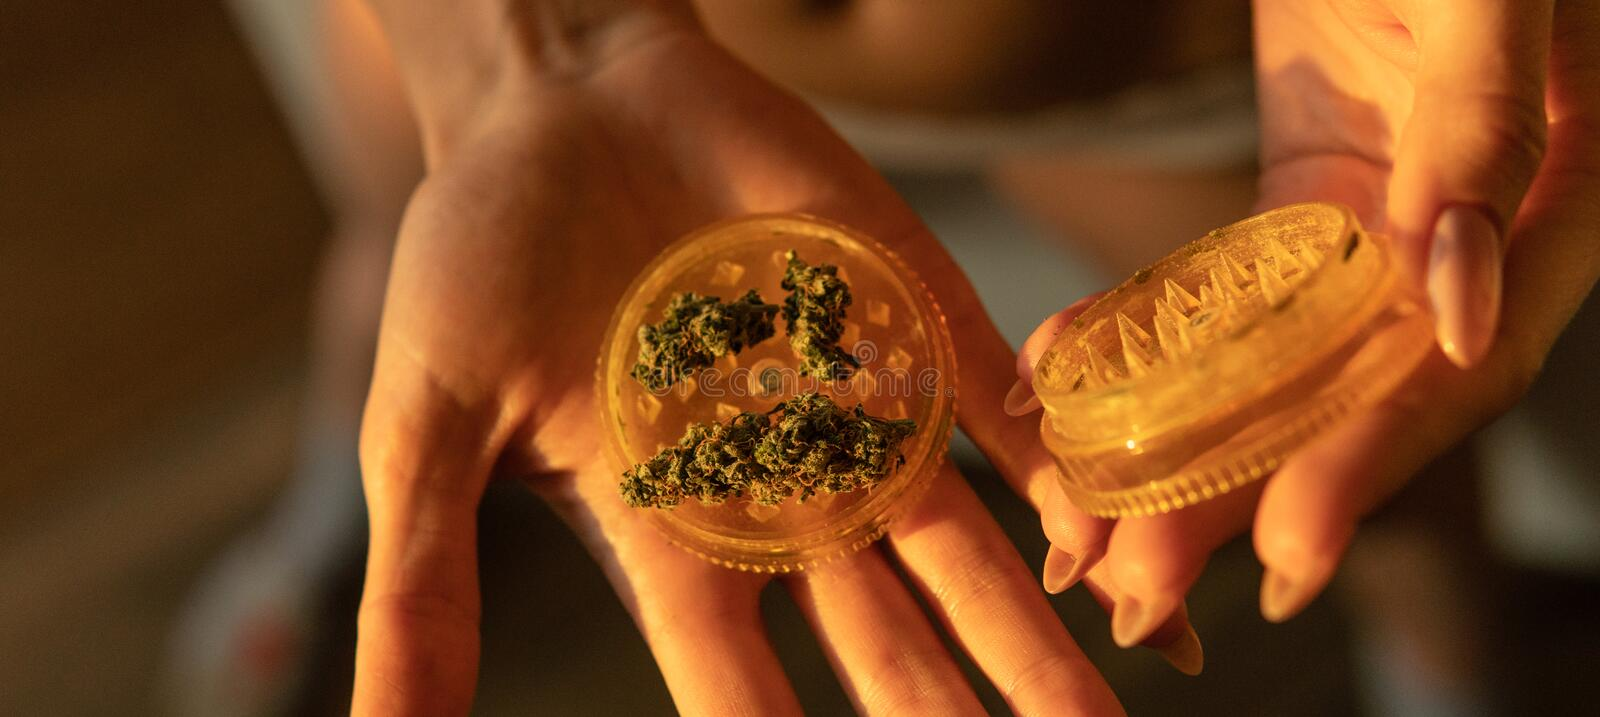 Marijuana buds in woman hands close-up. Culture of smoking marijuana in the world. Ready medical THC CBD cannabis buds  for smoking royalty free stock photography